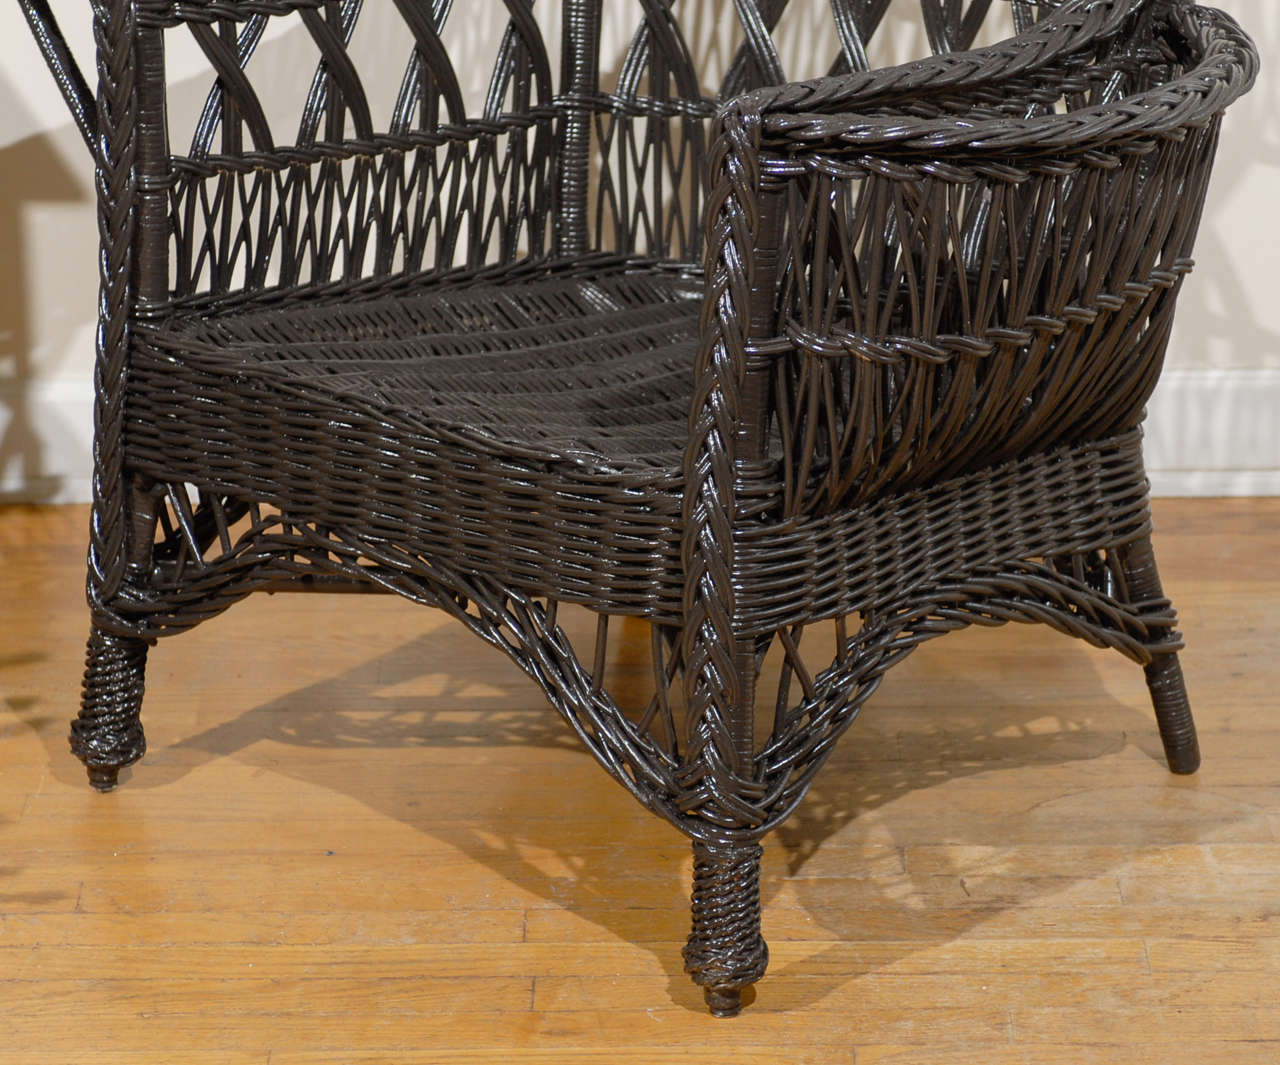 Antique American Wicker Wing Chair with Magazine Pocket In Excellent Condition For Sale In Atlanta, GA